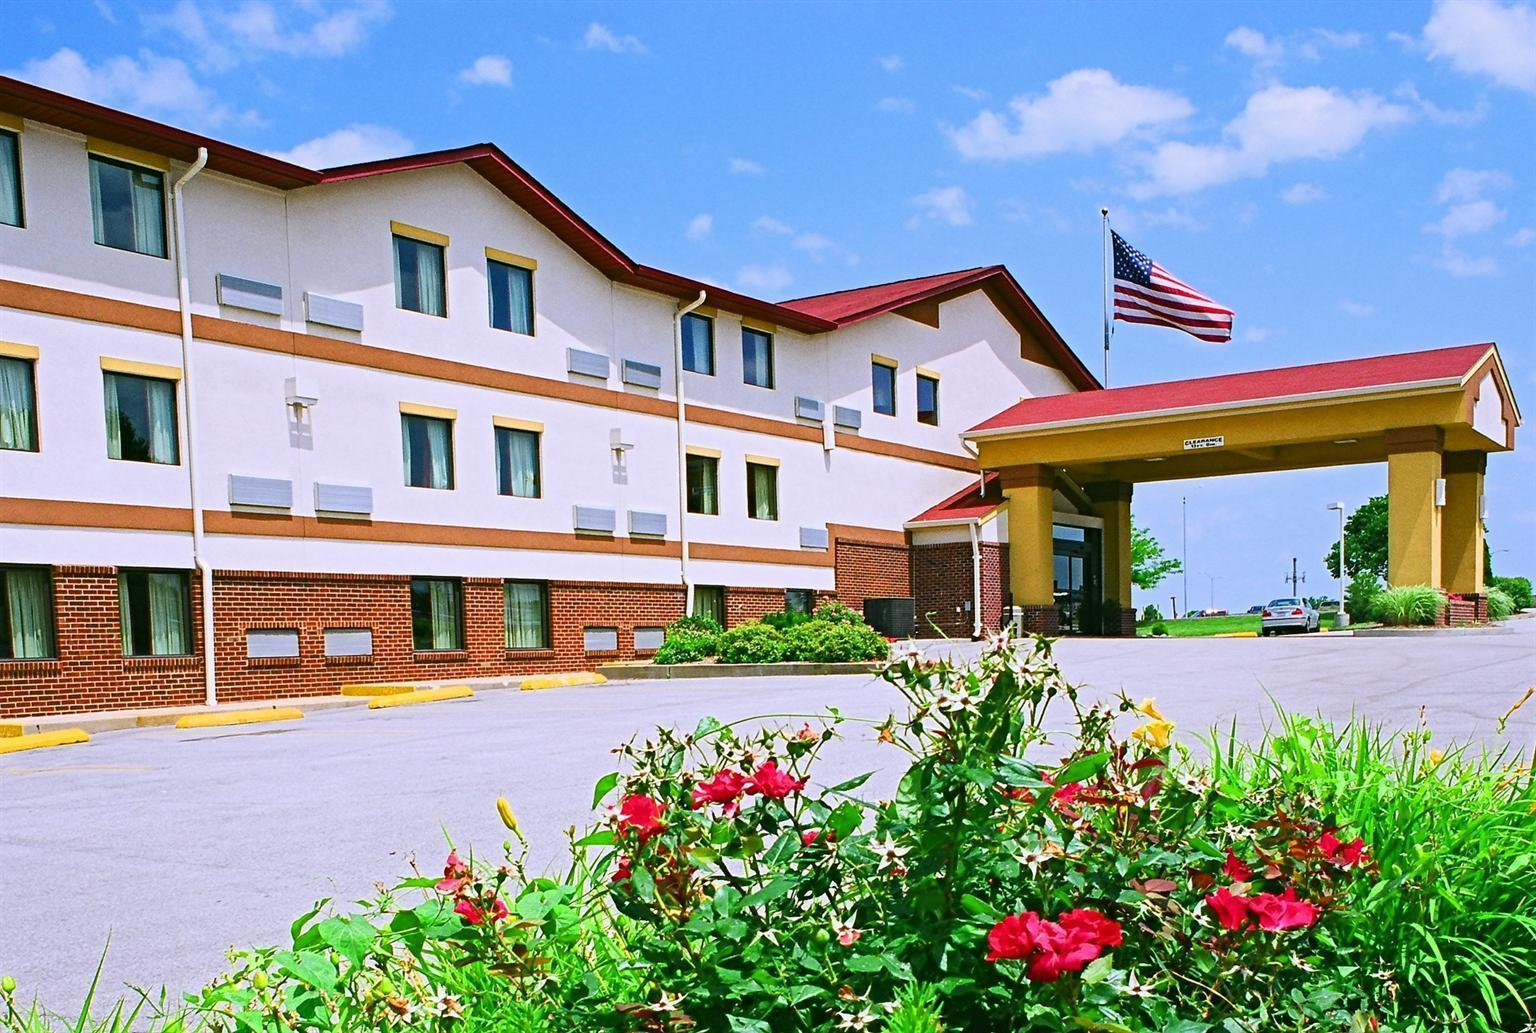 Americas Best Value Inn St. Louis South St. Louis (MO) United States